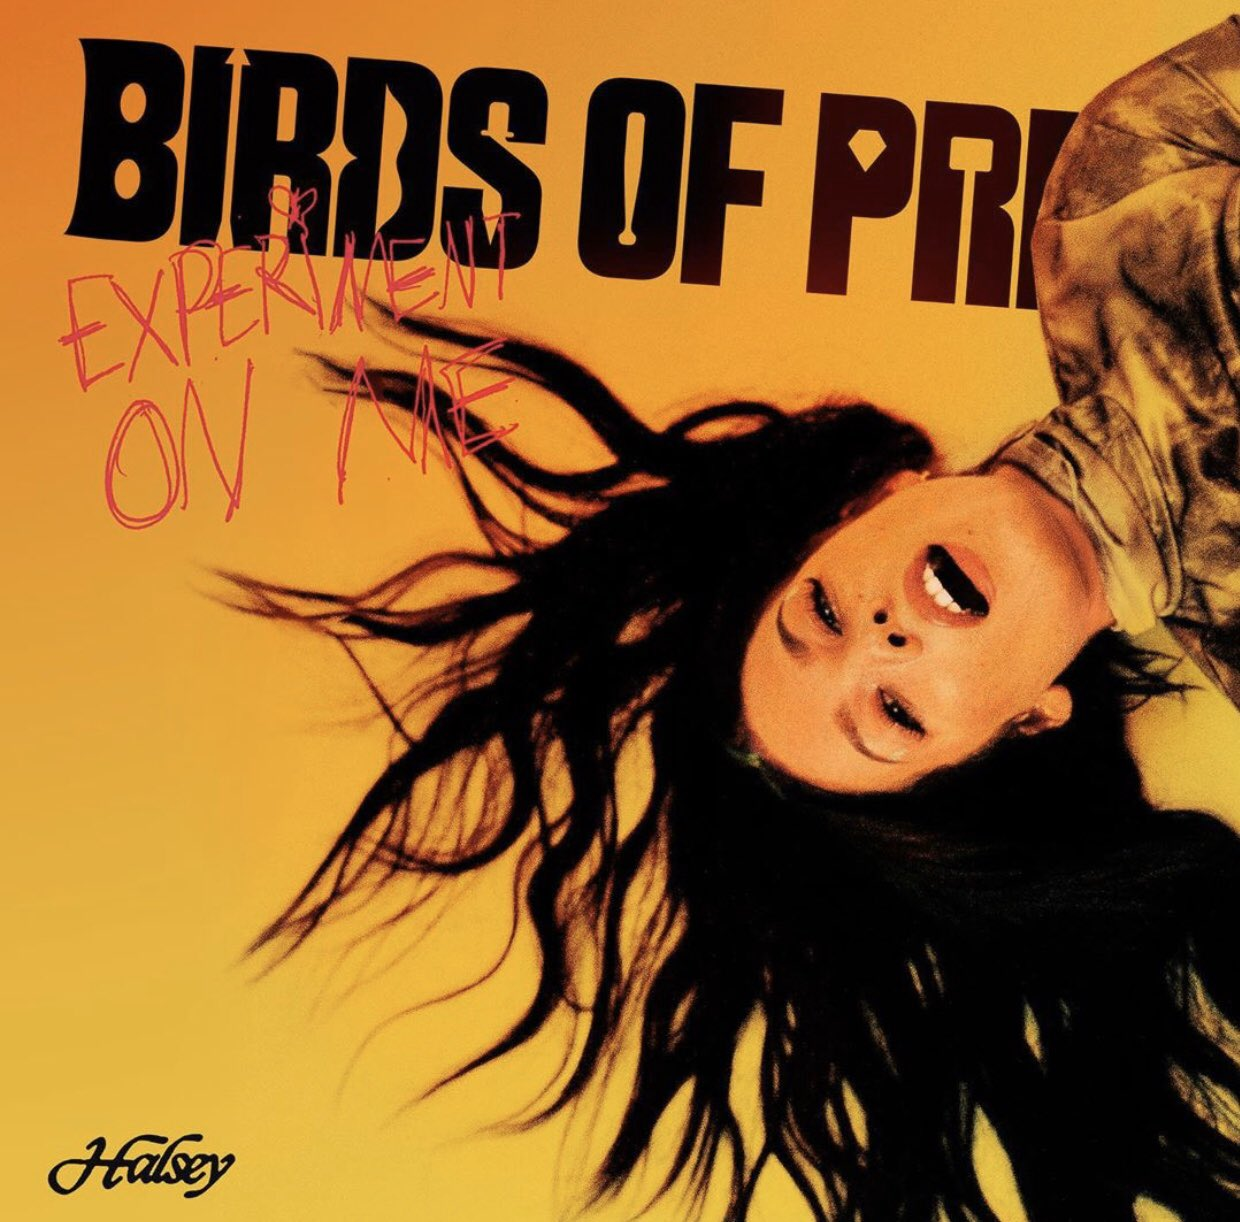 Experiment-on-Me-Lyrics-Song-Birds-of-Prey-The-Album-Various-Artists-Halsey